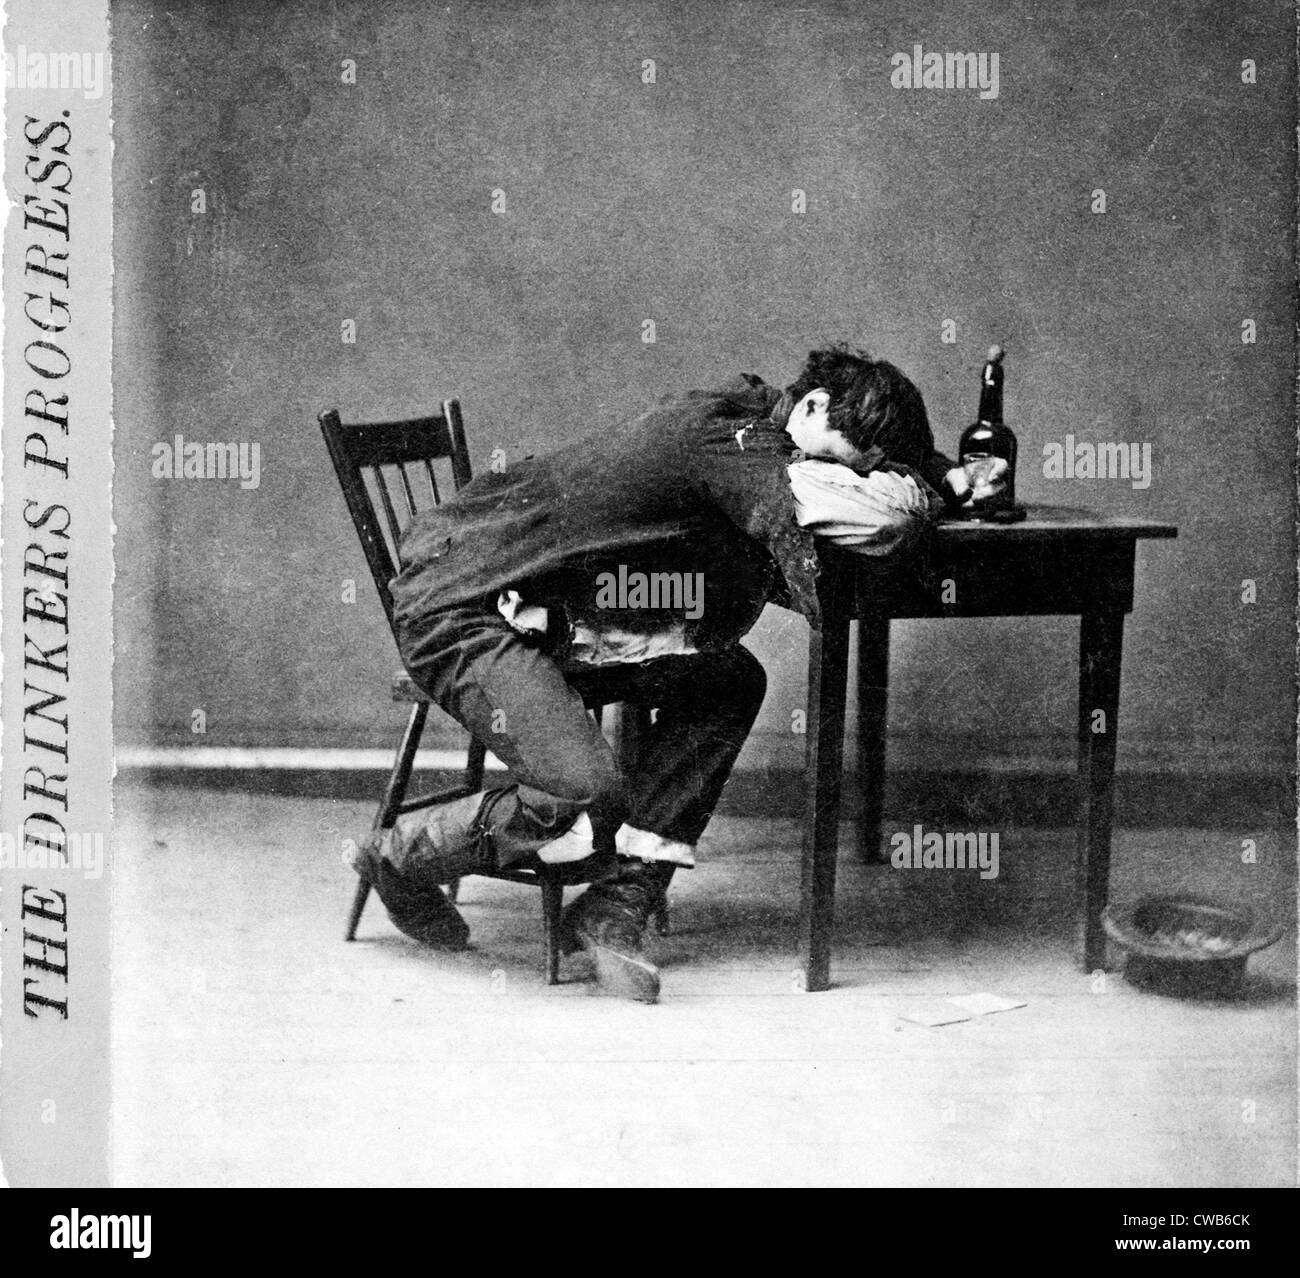 The drinker's progress: He is 'cleaned out'. stereo photograph by G.W. Edmondson, 1874. - Stock Image